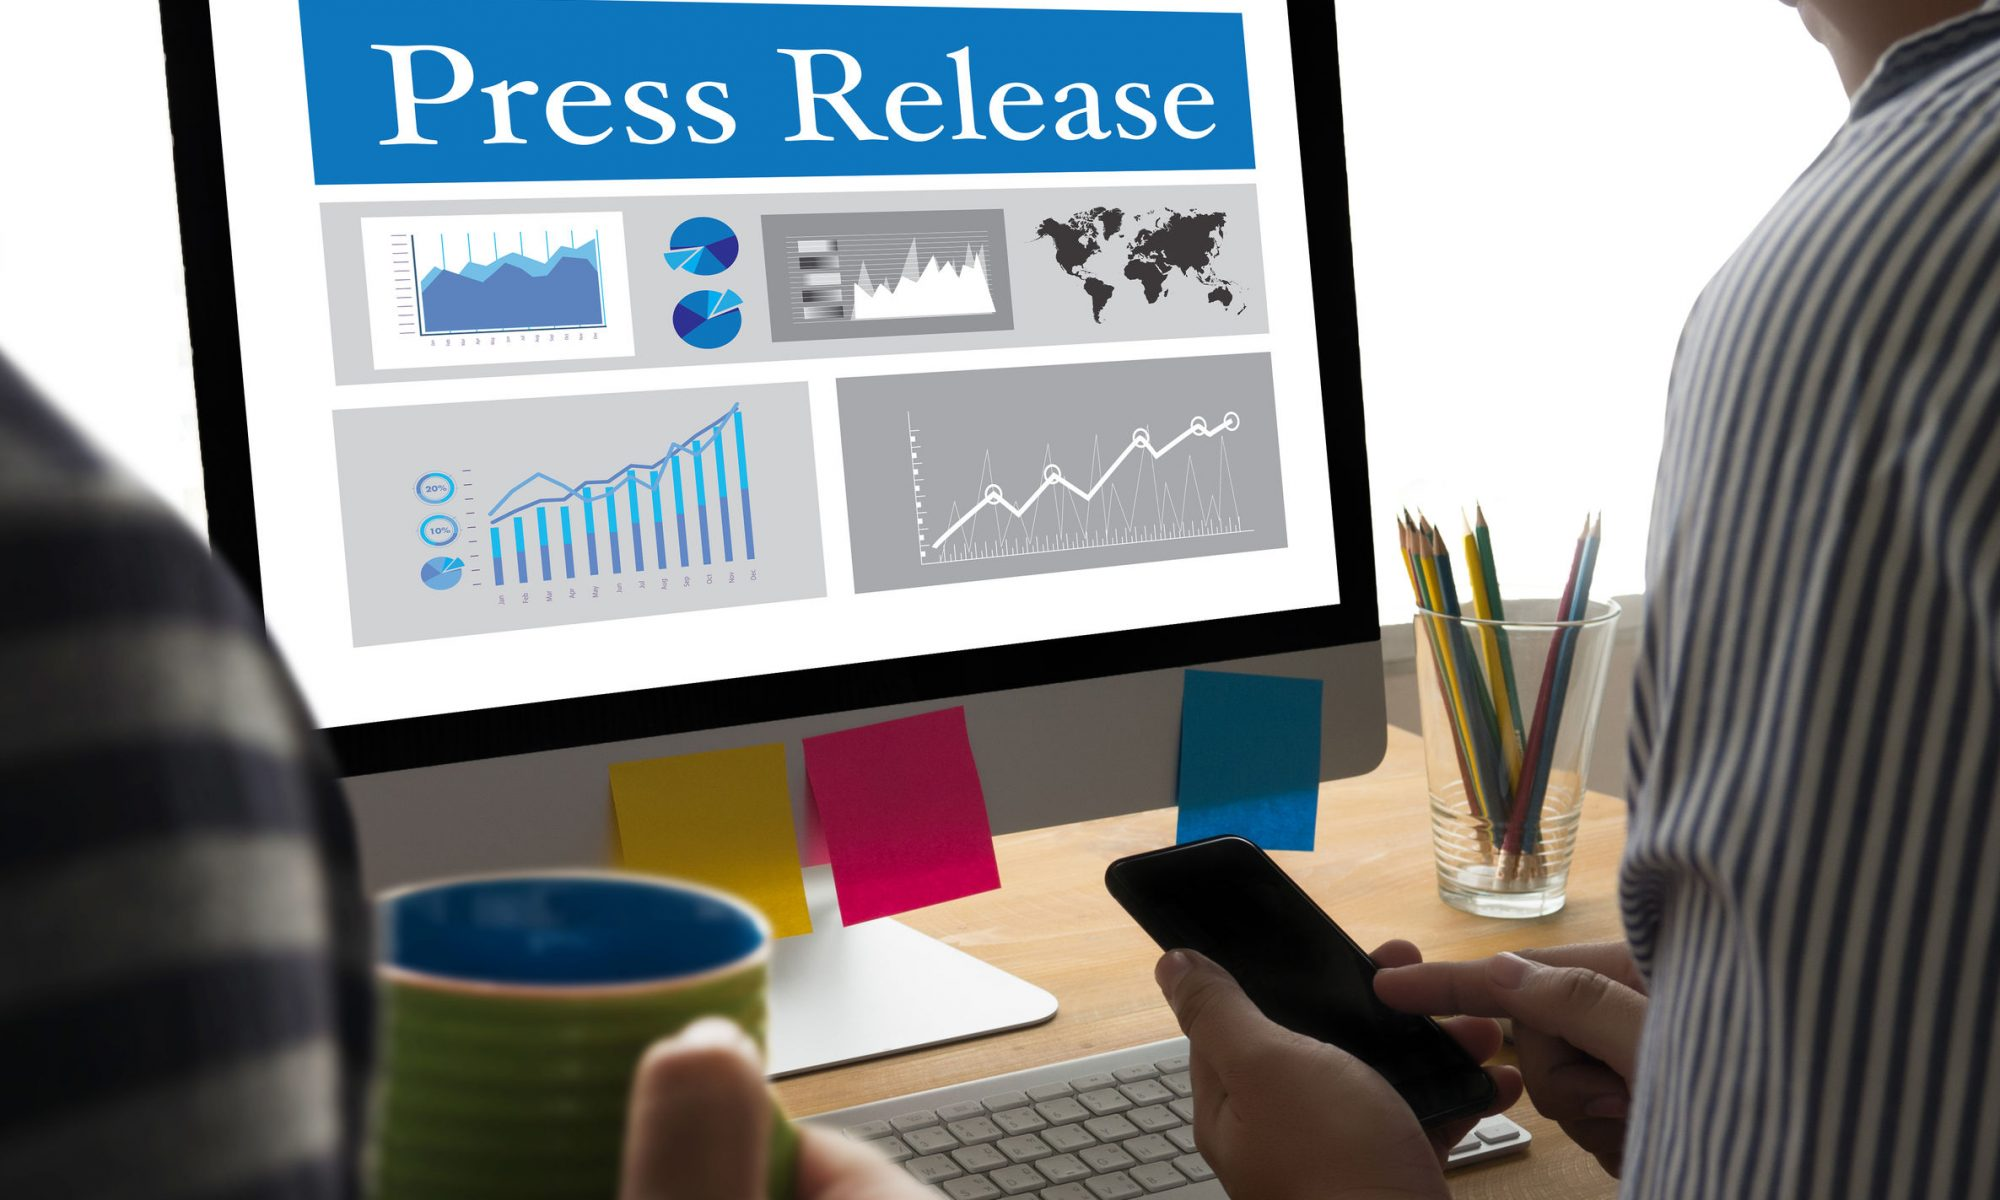 How to Make a Press Release